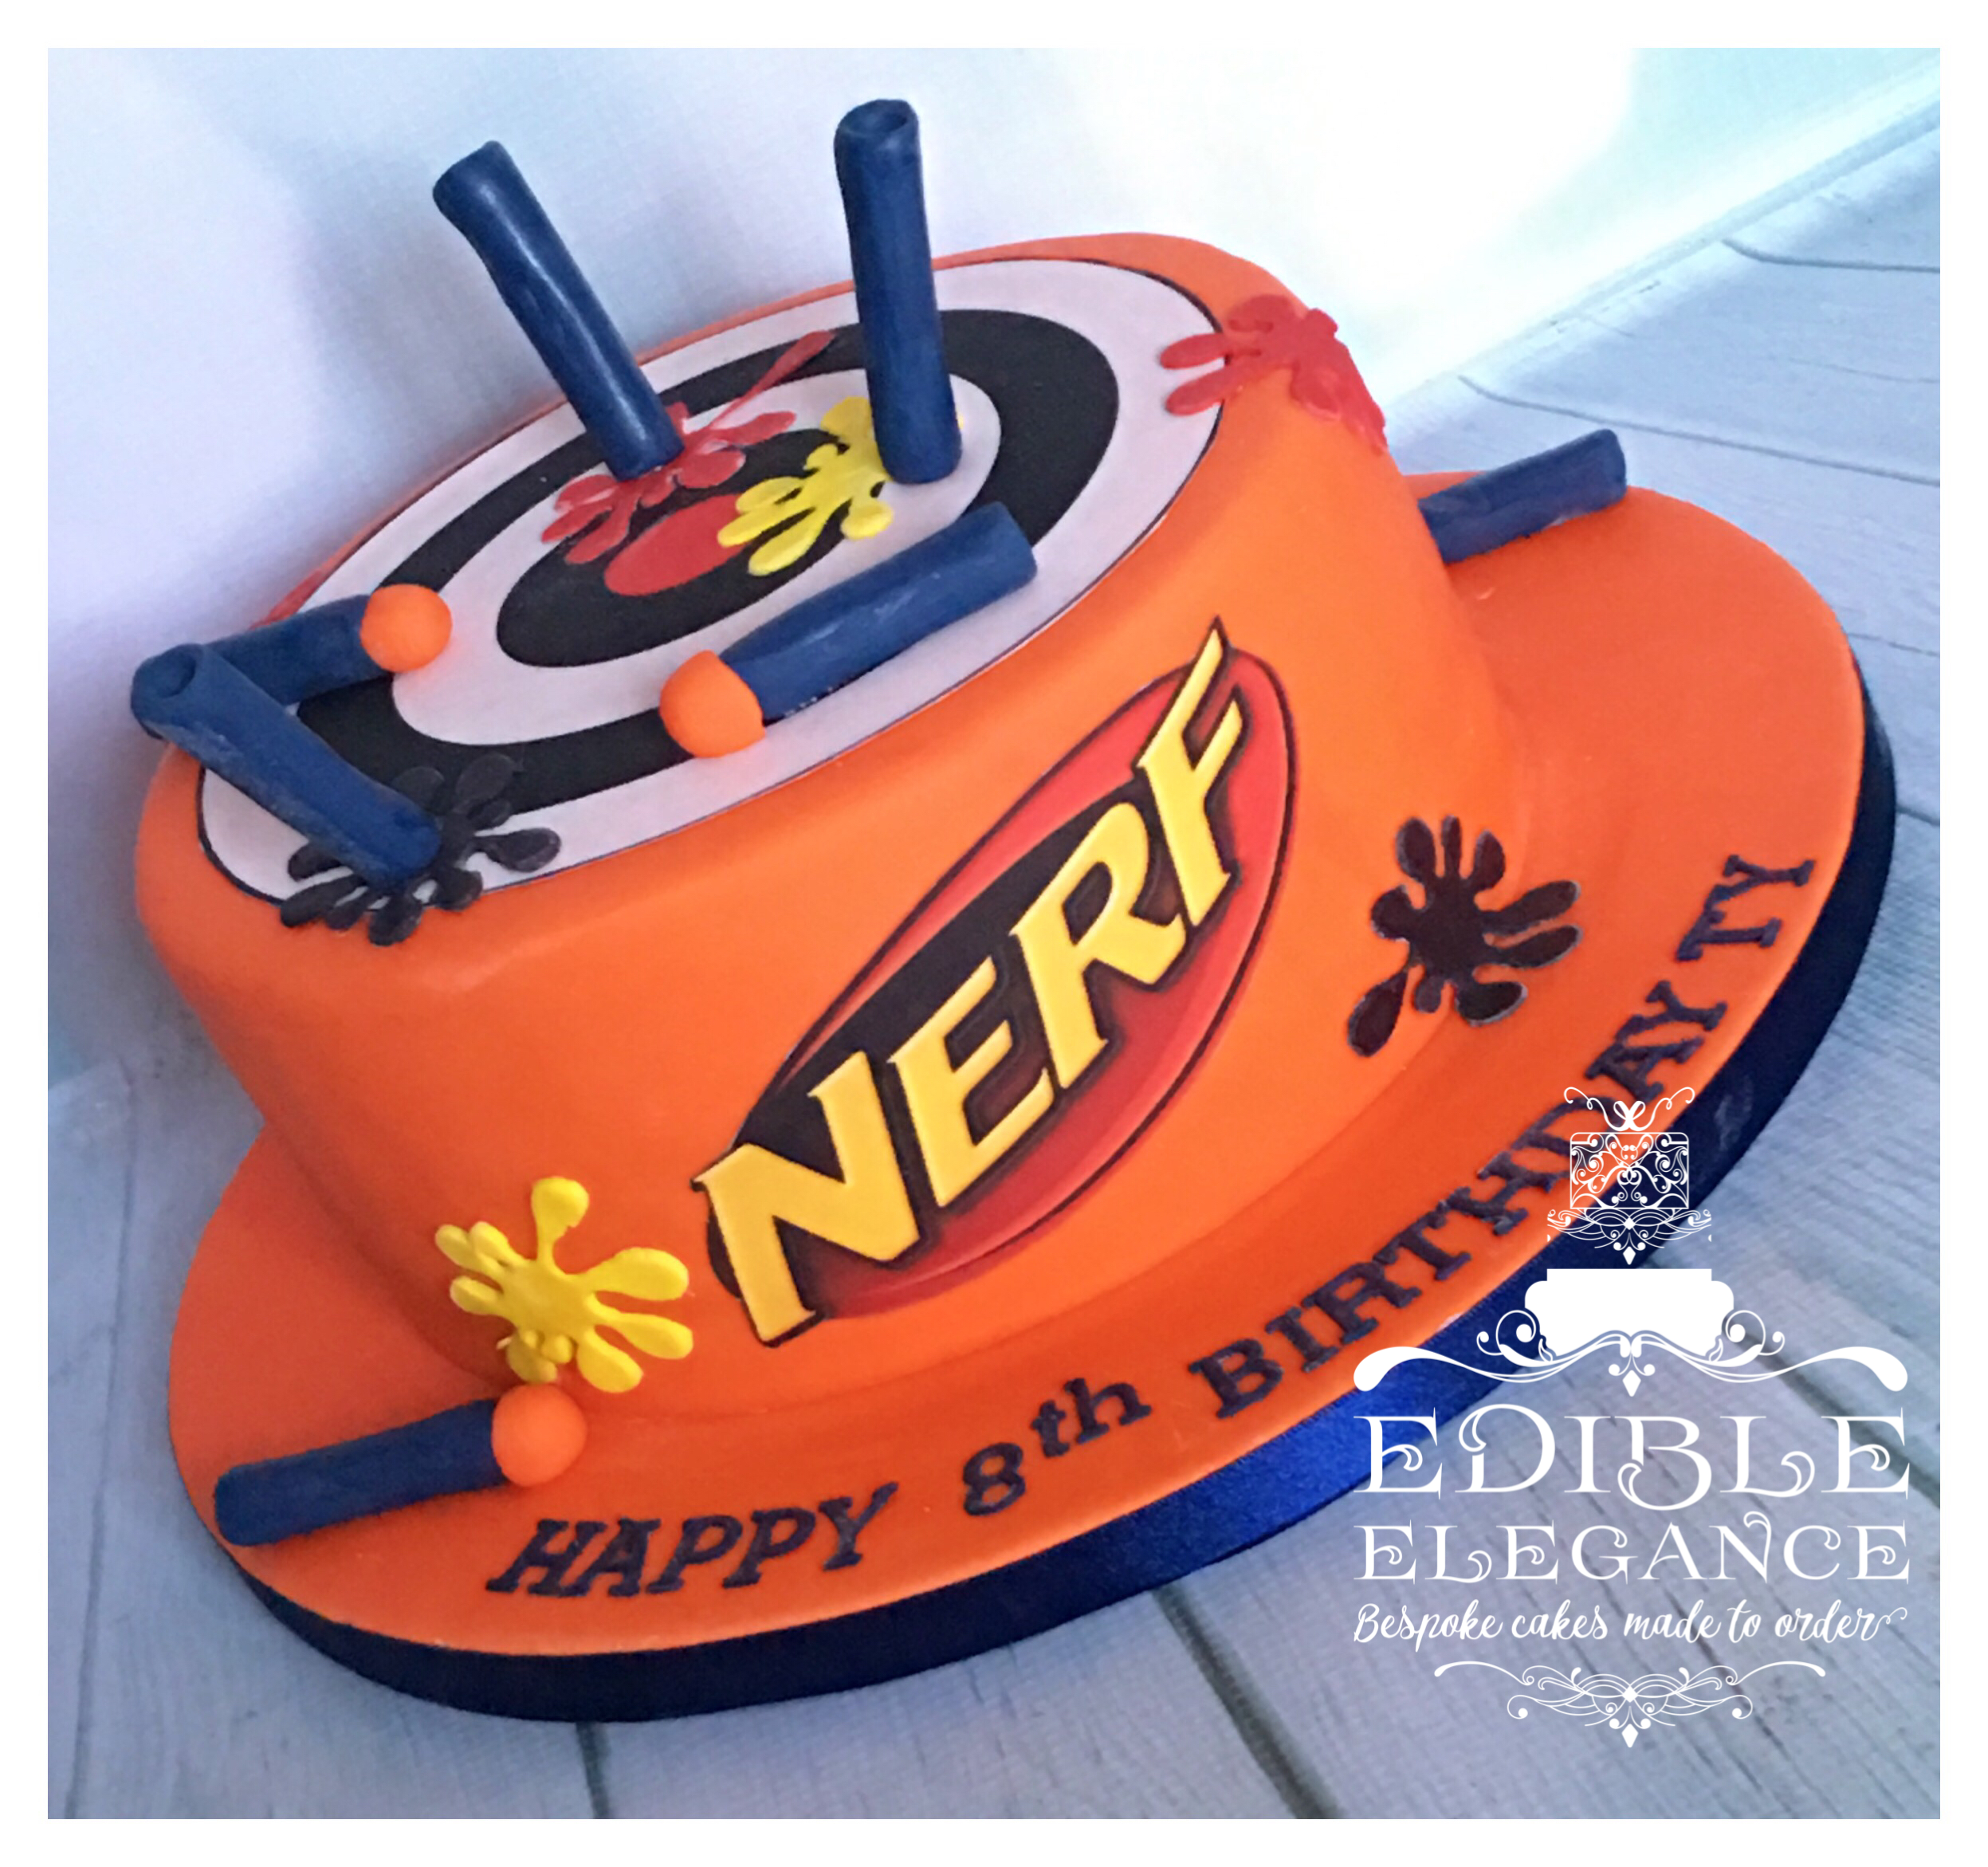 Nerf target cake gorgeous bright colours Everything edible Kids